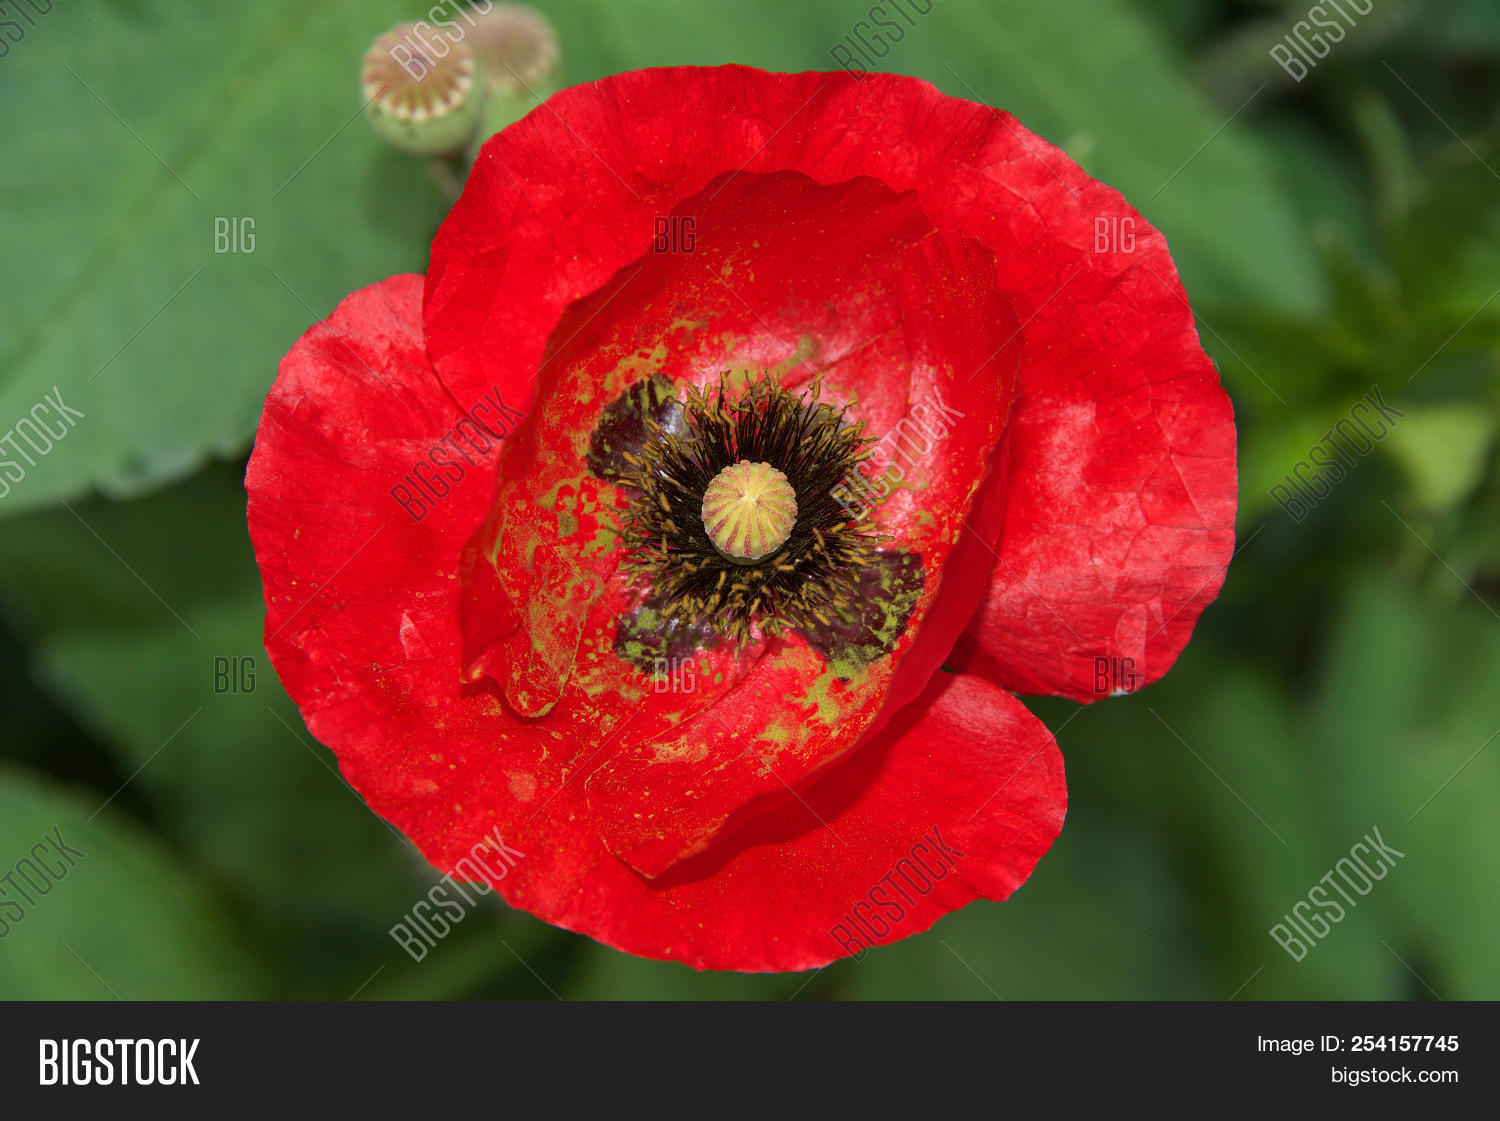 Close Up Of One Red Poppy Flower A Poppy Is A Flowering Plant In